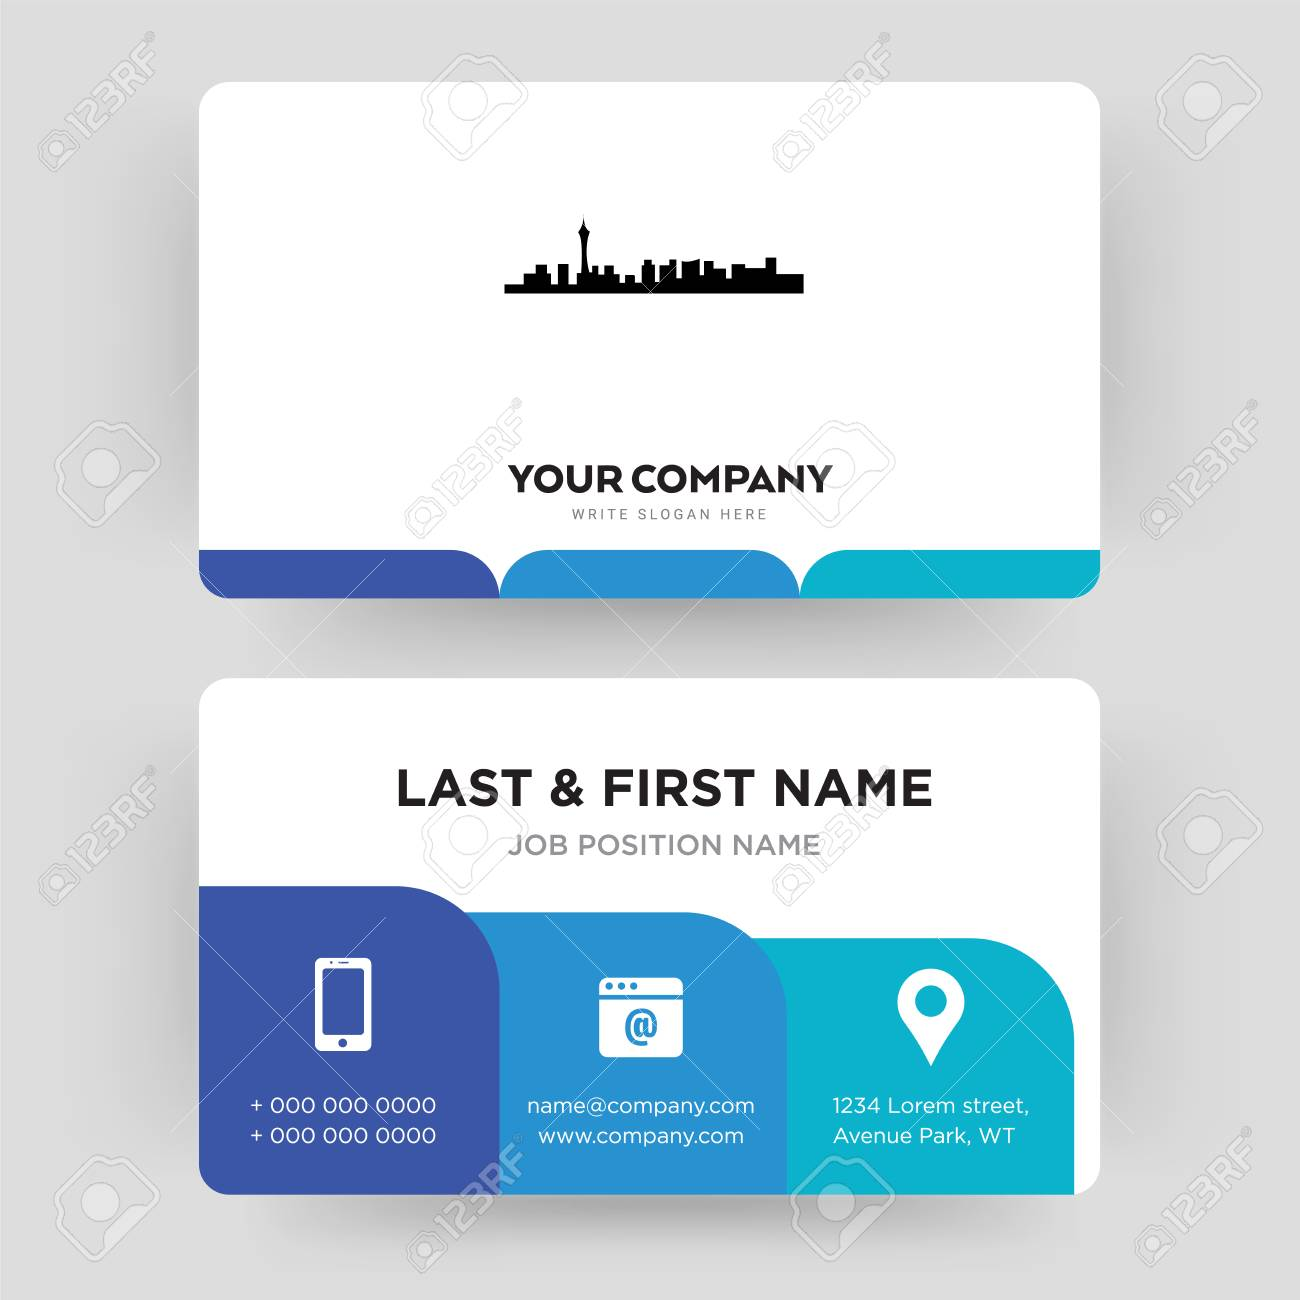 Las Vegas Business Card Design Template Visiting For Your Company